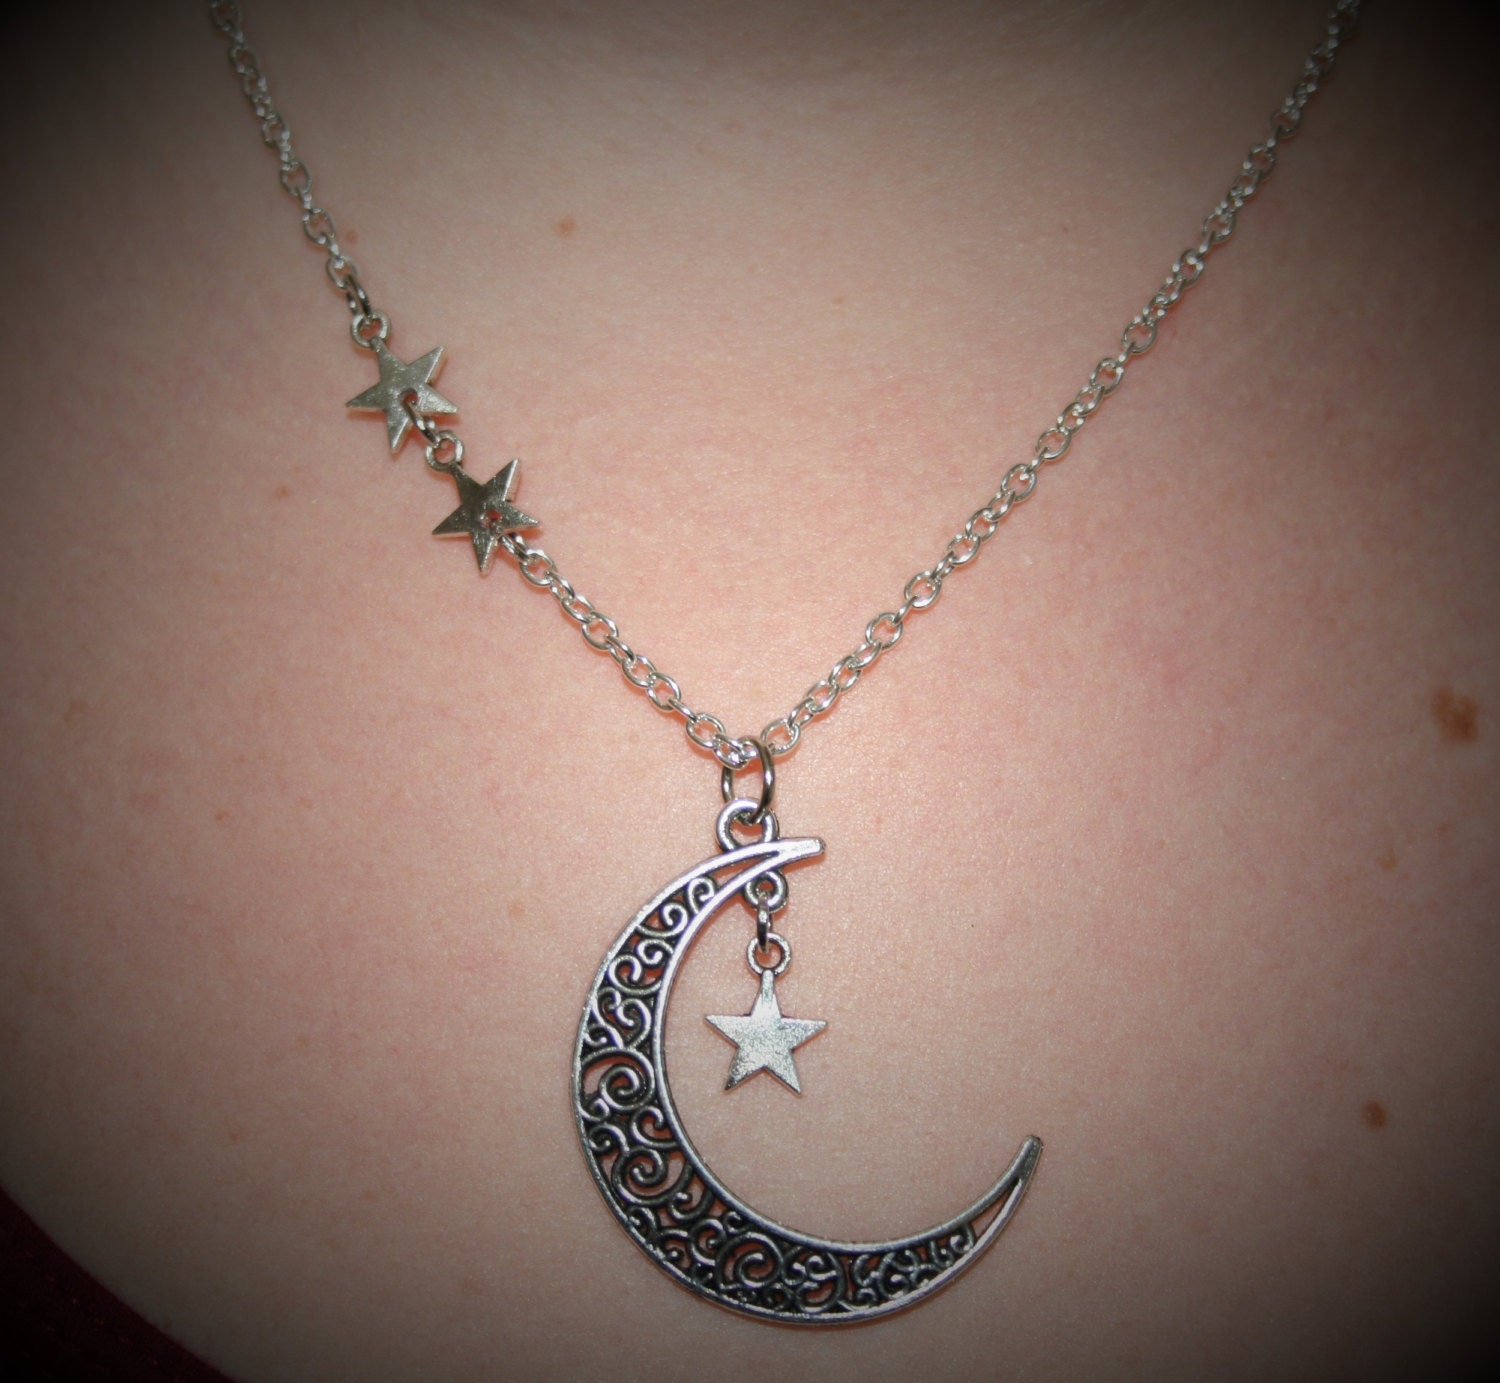 Moon and star necklace star dangle necklace moon and star jewelry moon and star necklace star dangle necklace moon and star jewelry silver tribal celtic moon night sky jewelry moon pendant wicca star aloadofball Image collections